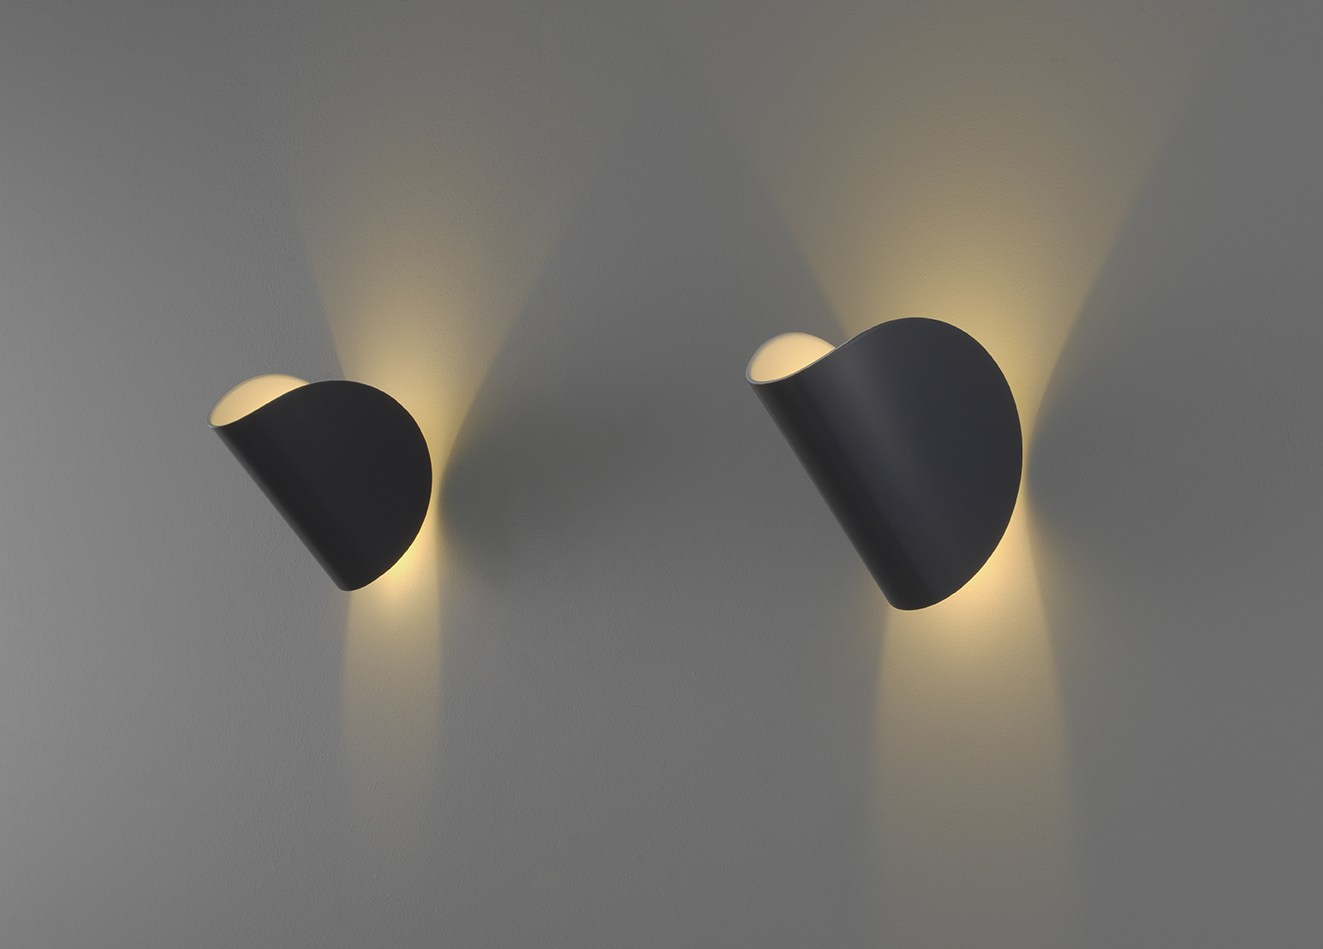 Applique A Led Applique A Led Io By Fontanaarte Design Claesson Koivisto Rune